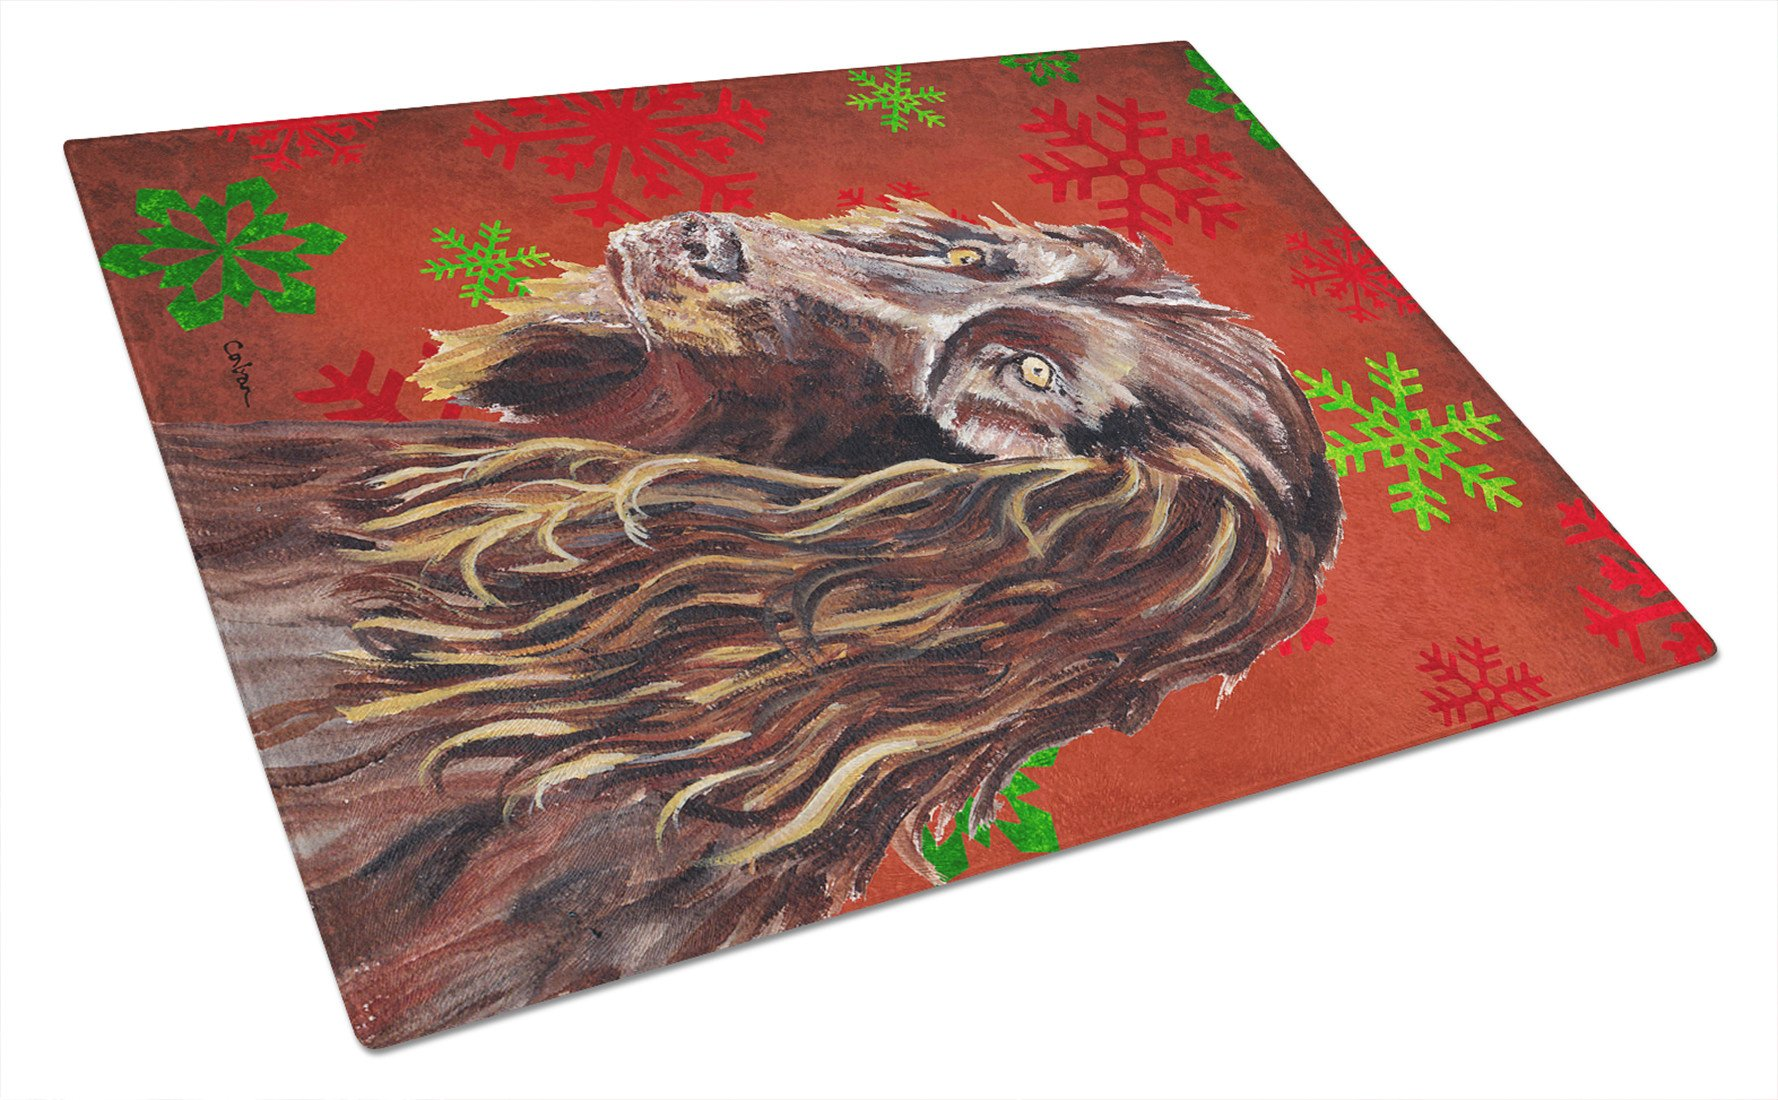 Boykin Spaniel Red Snowflake Christmas Glass Cutting Board Large by Caroline's Treasures